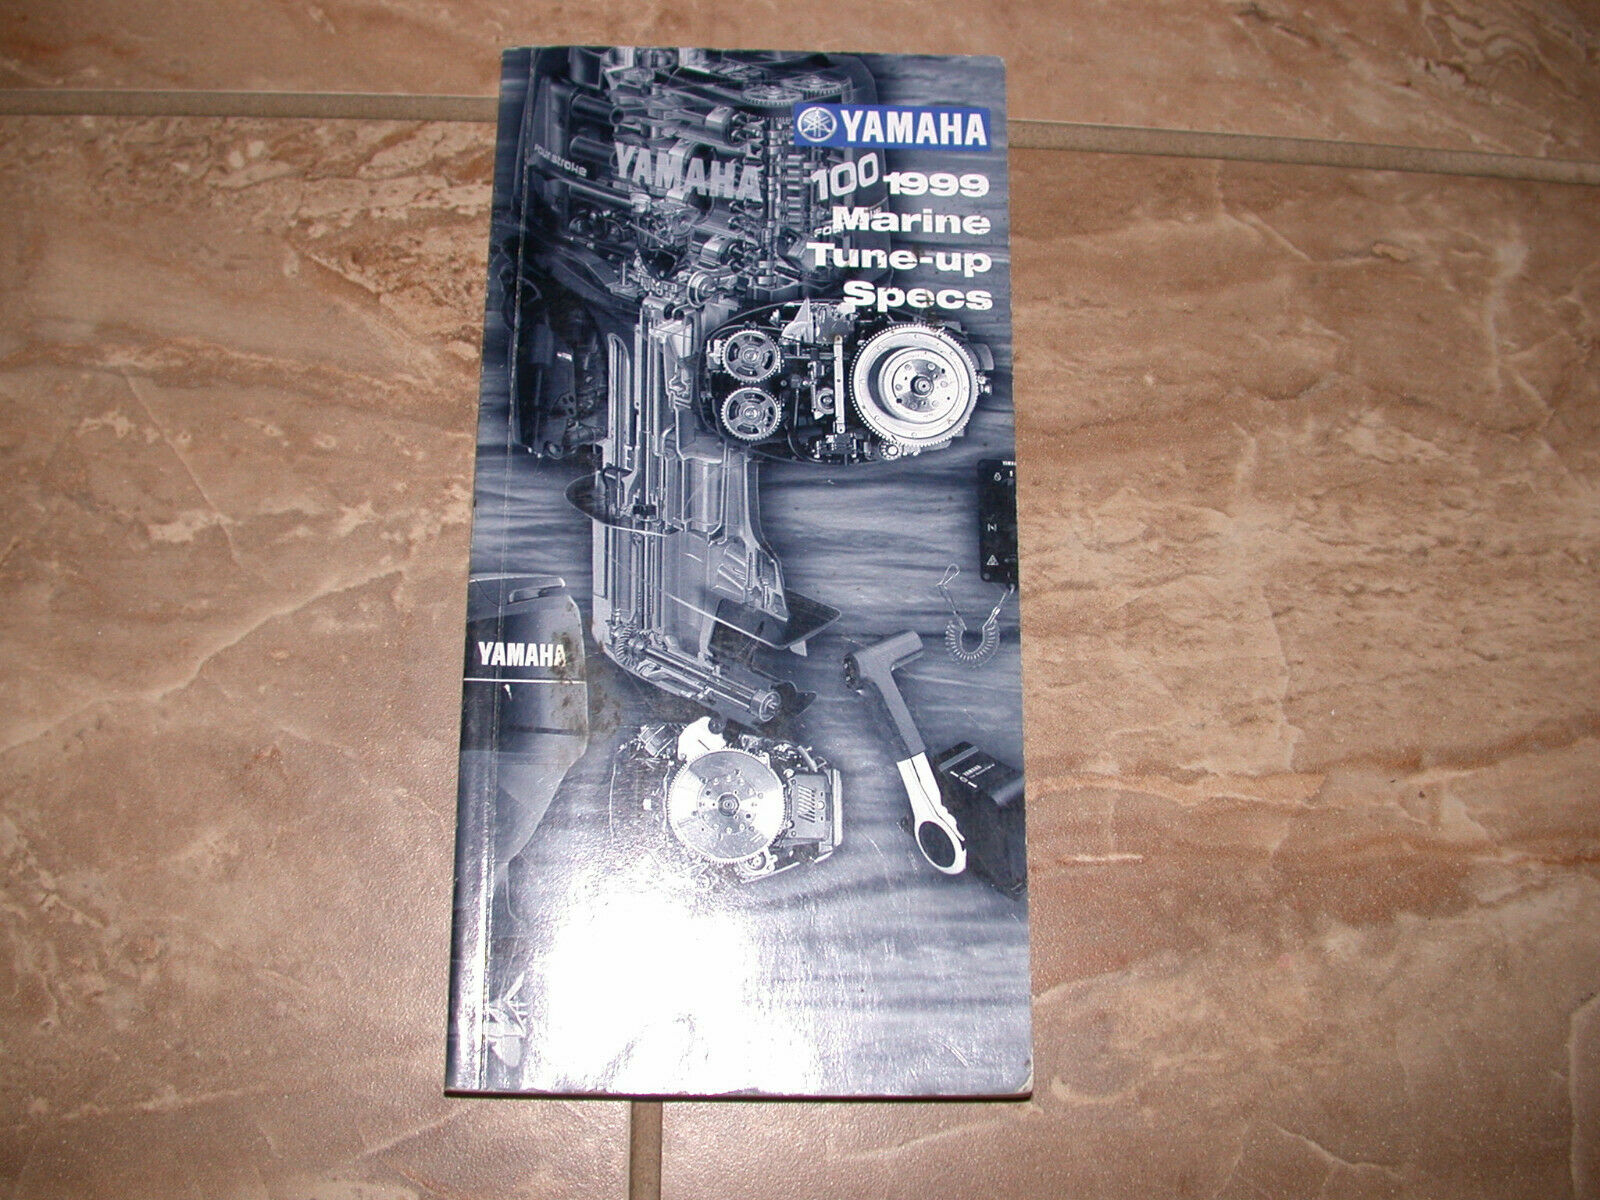 1984 to 1999 YAMAHA OUTBOARD TUNE-UP SPECS COVERS  2 TO 250 HP PLUS STERN DRIVE